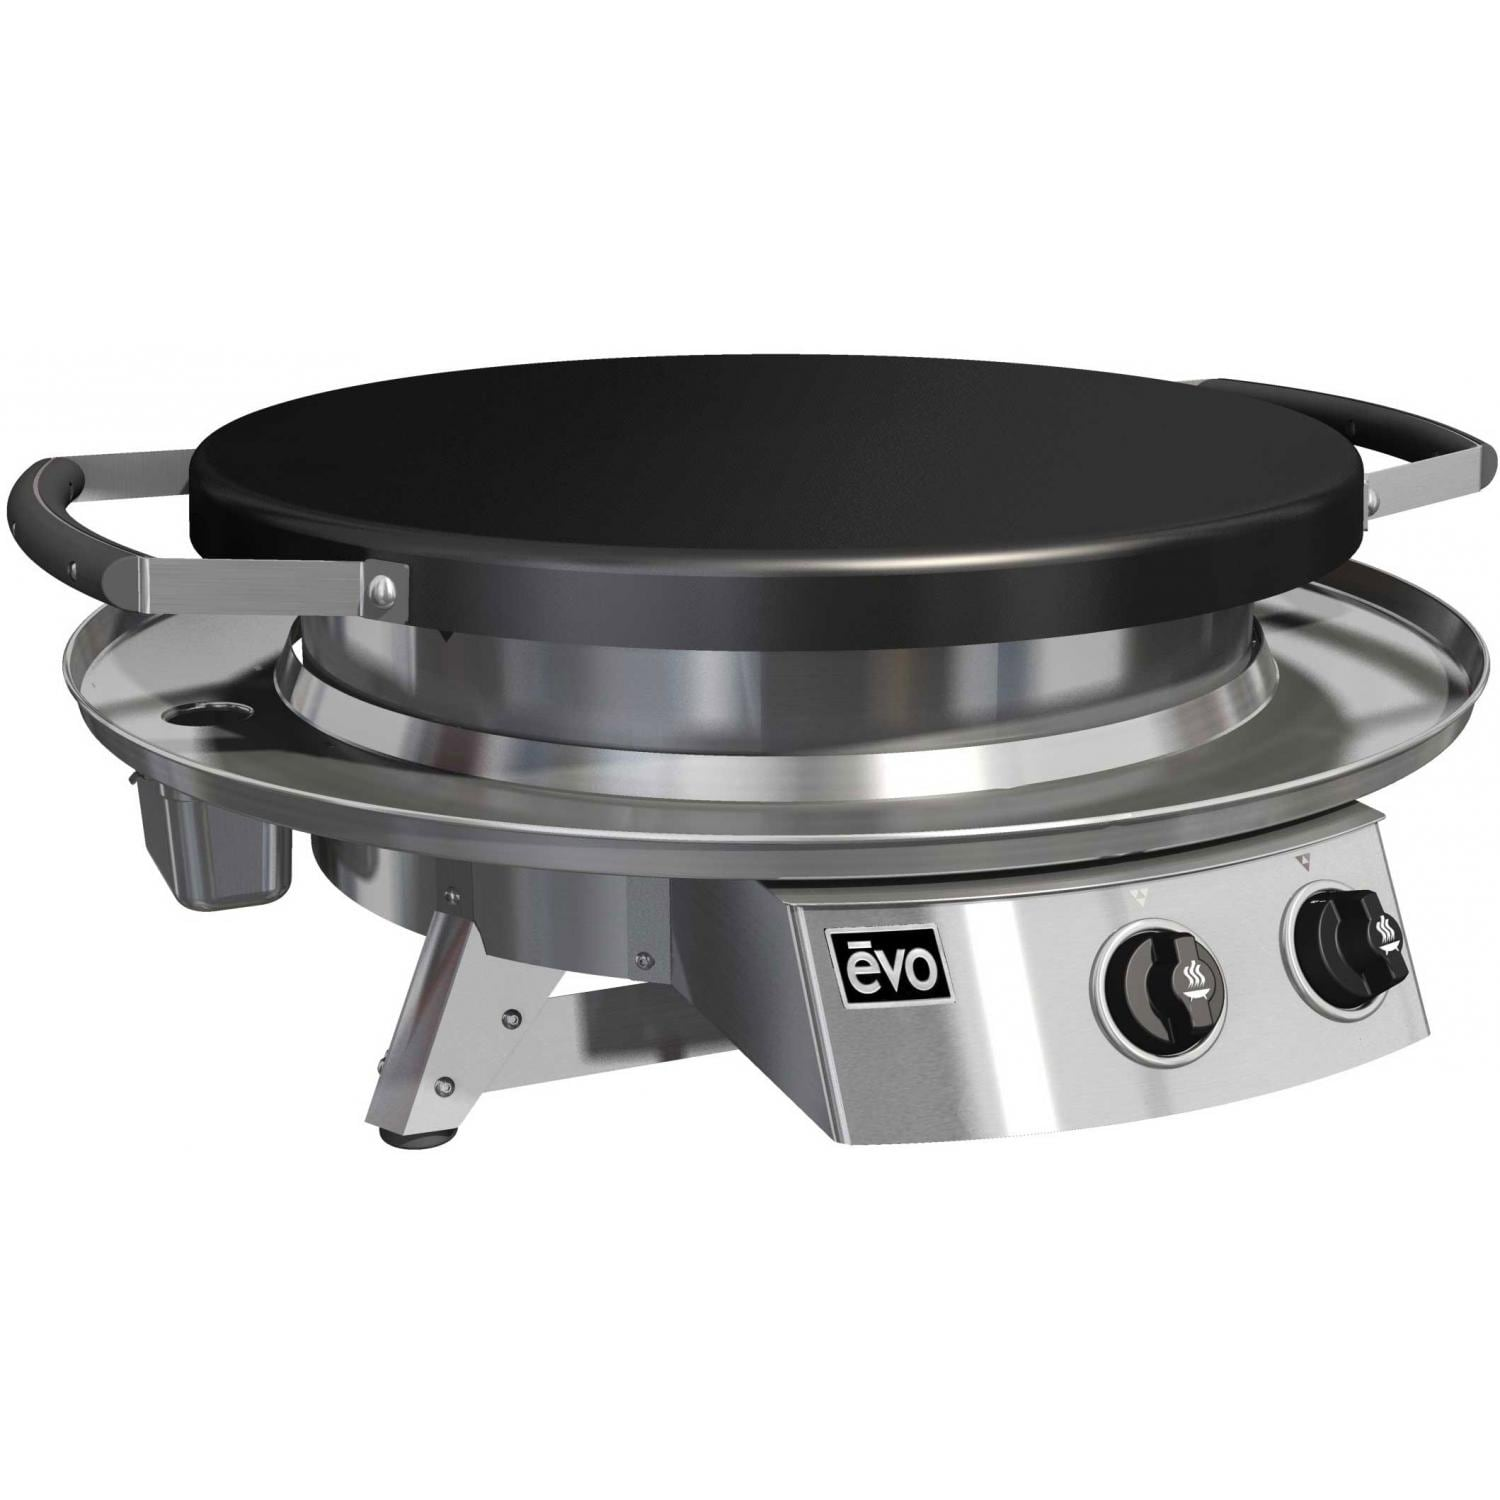 EVO Grill - Professional Tabletop Gas Grill : BBQ Guys